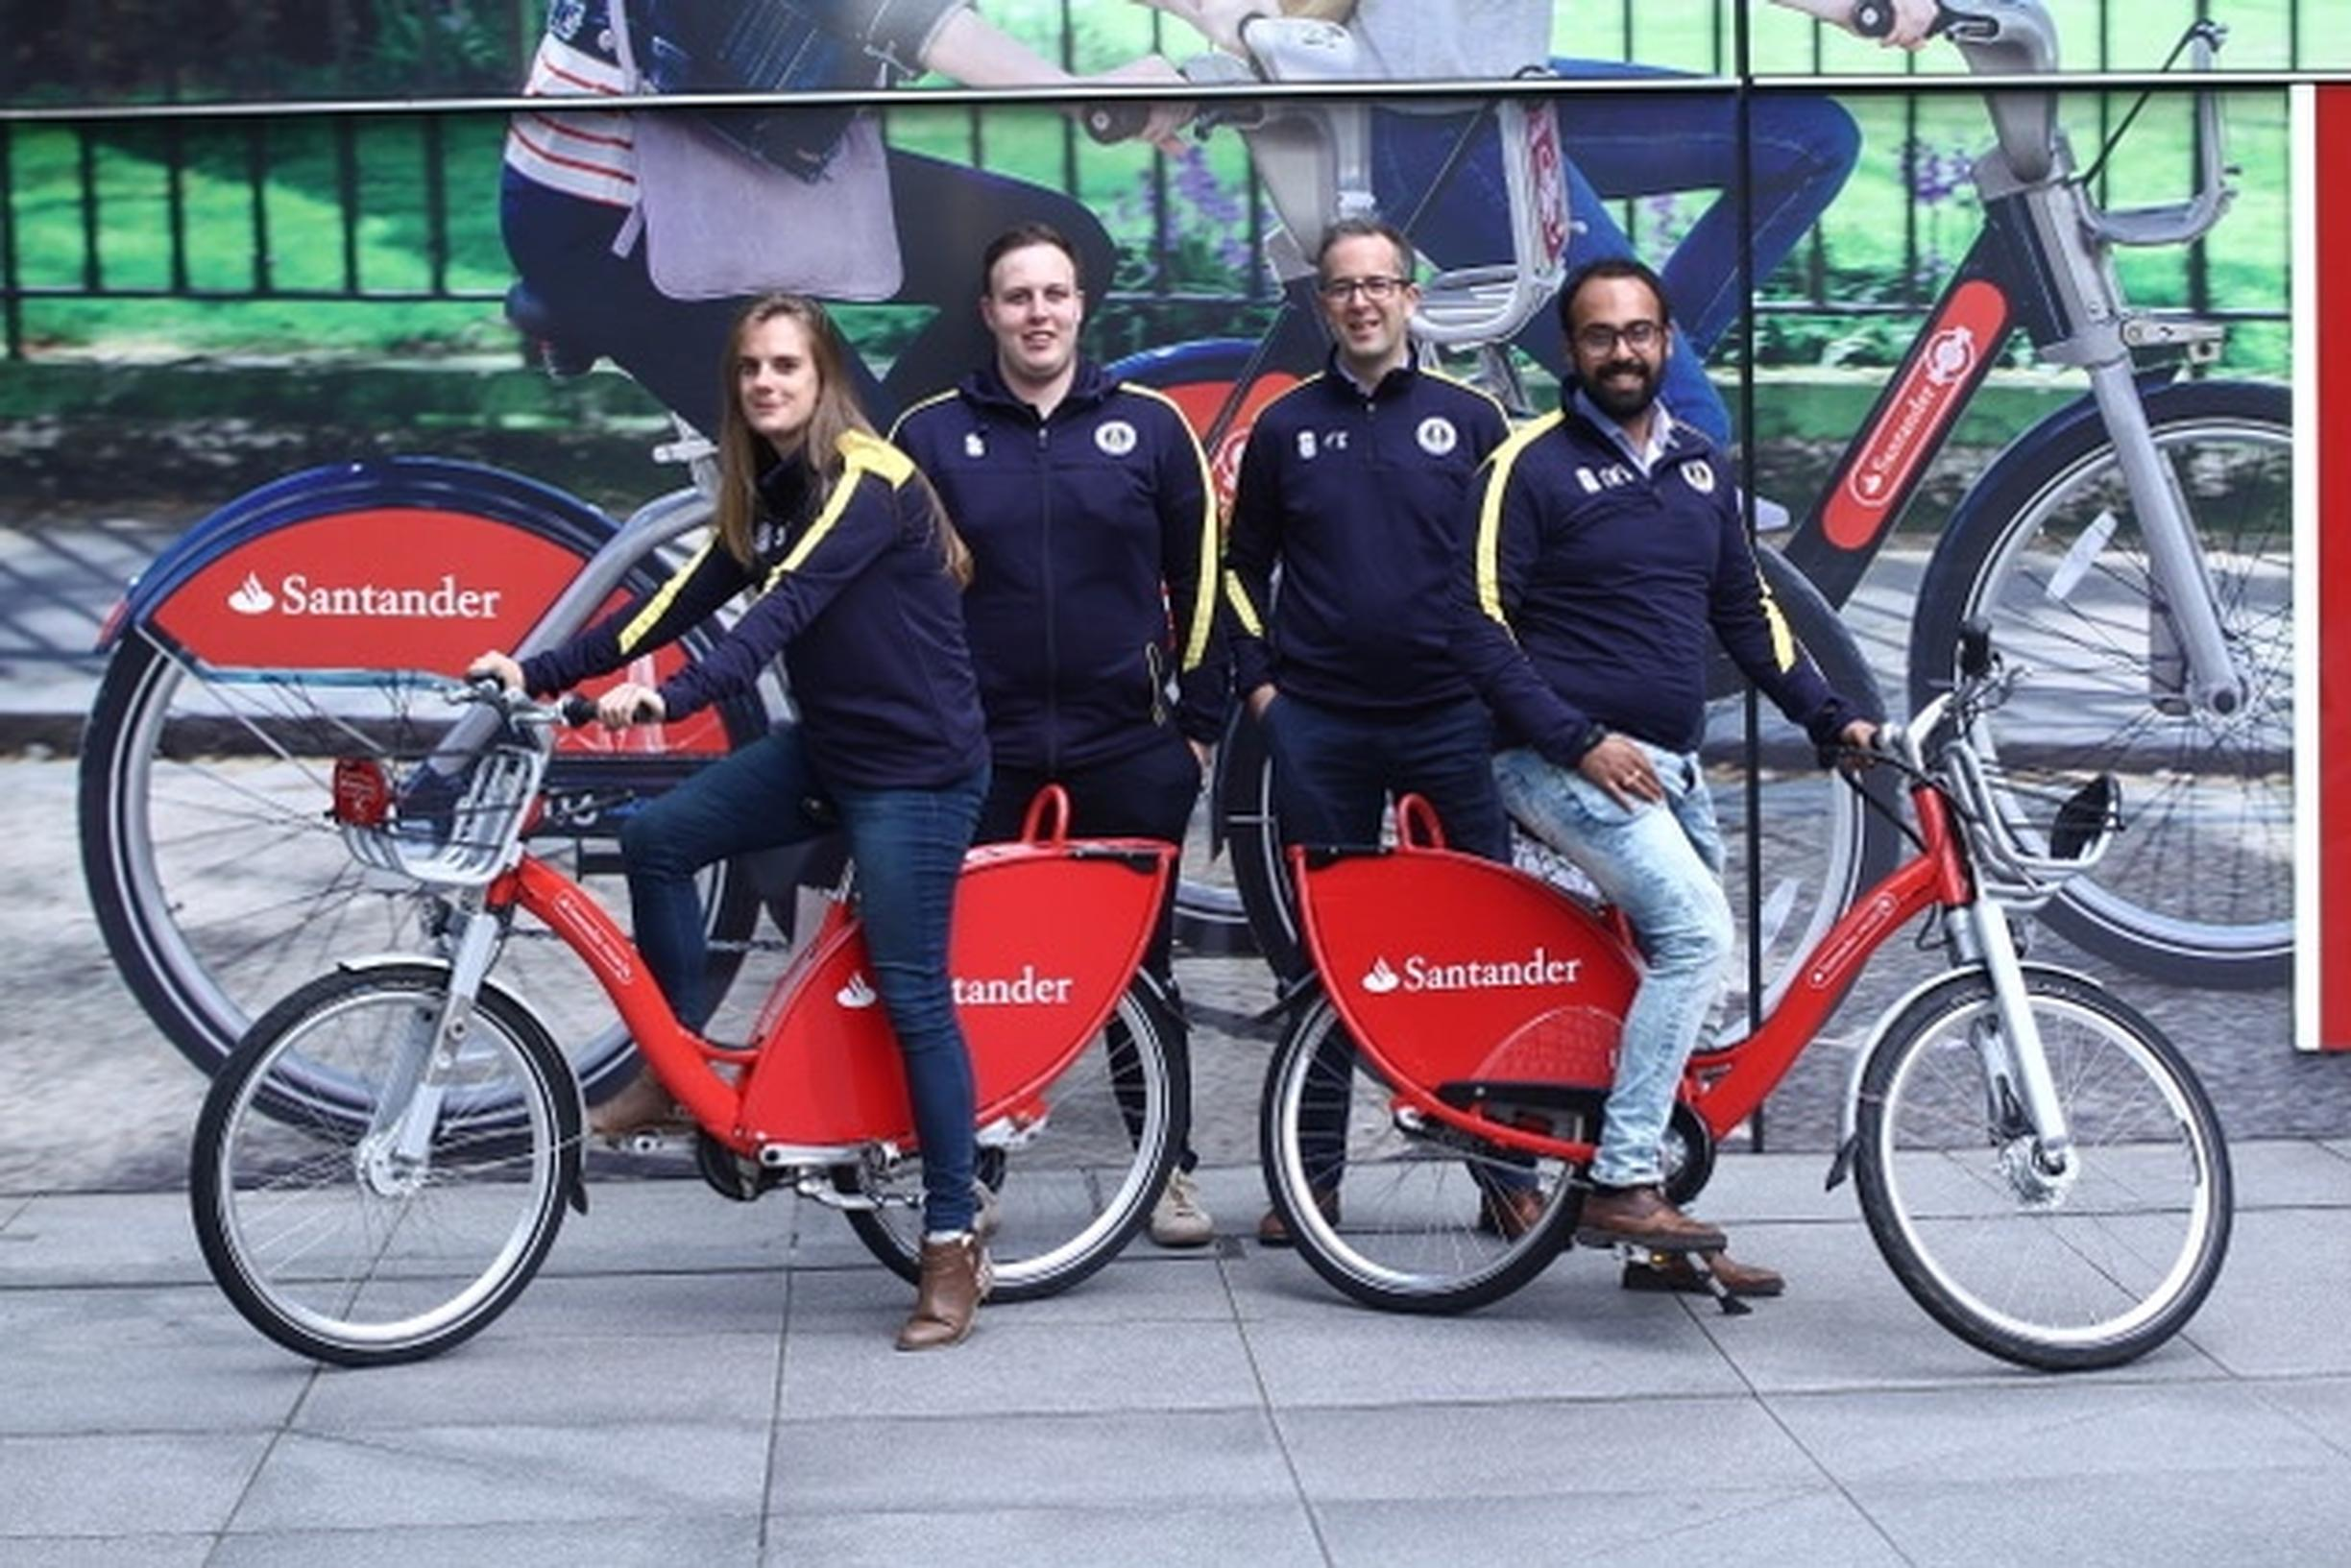 Brunel London which, along with Swansea, came top out of 23 universities that entered Santander`s cycle hire scheme competition